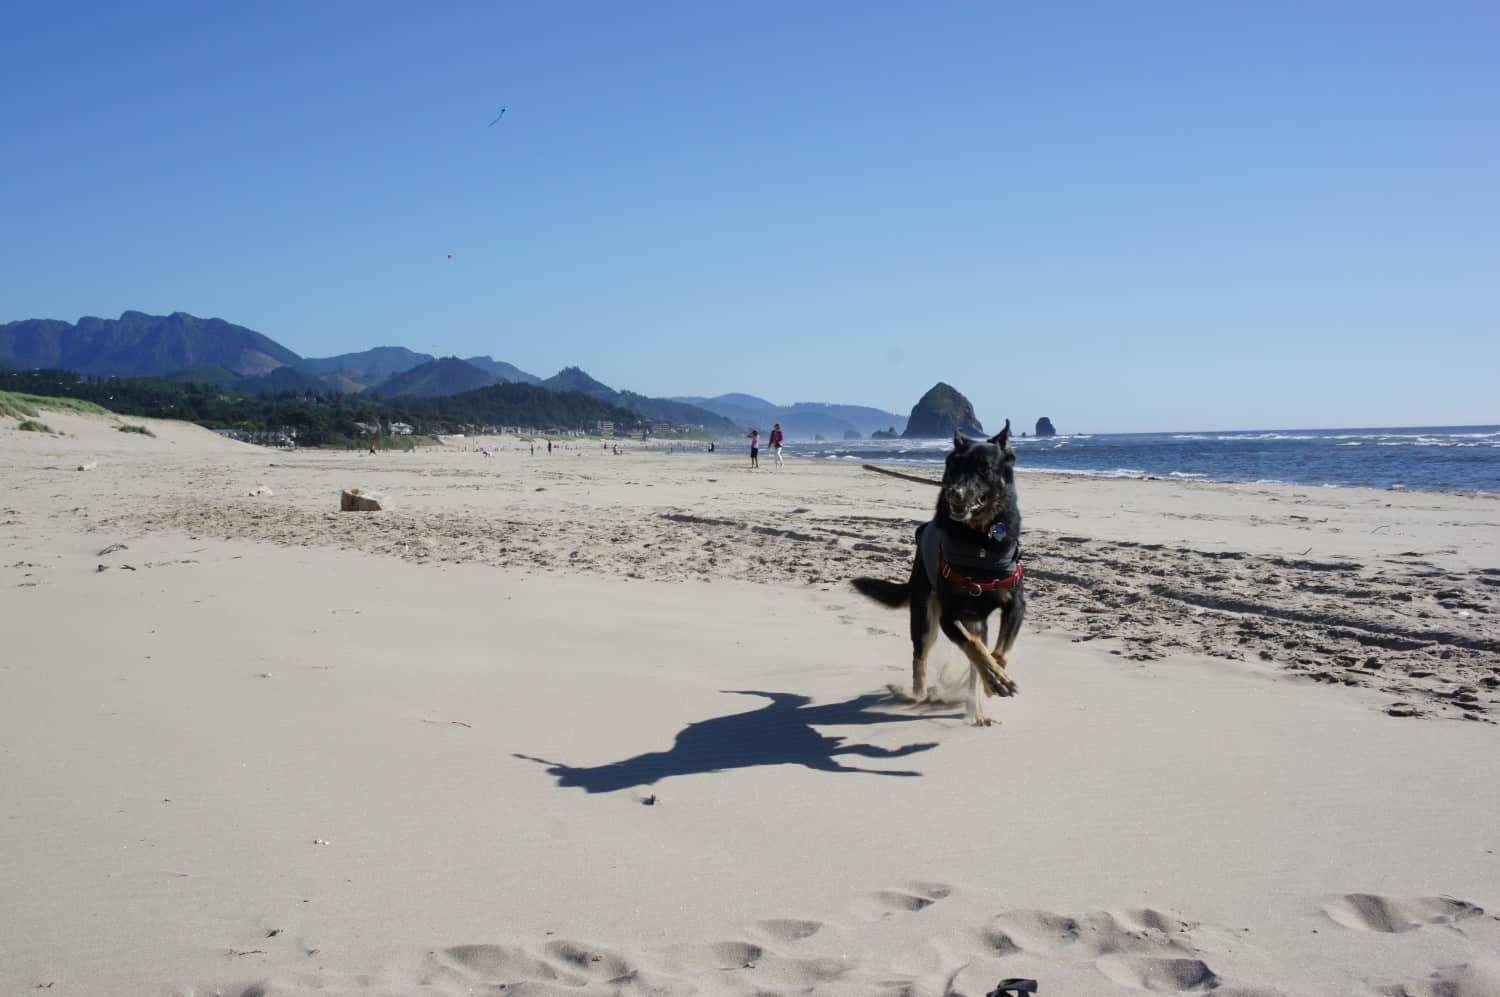 Buster on the Beach - Cannon Beach, Oregon